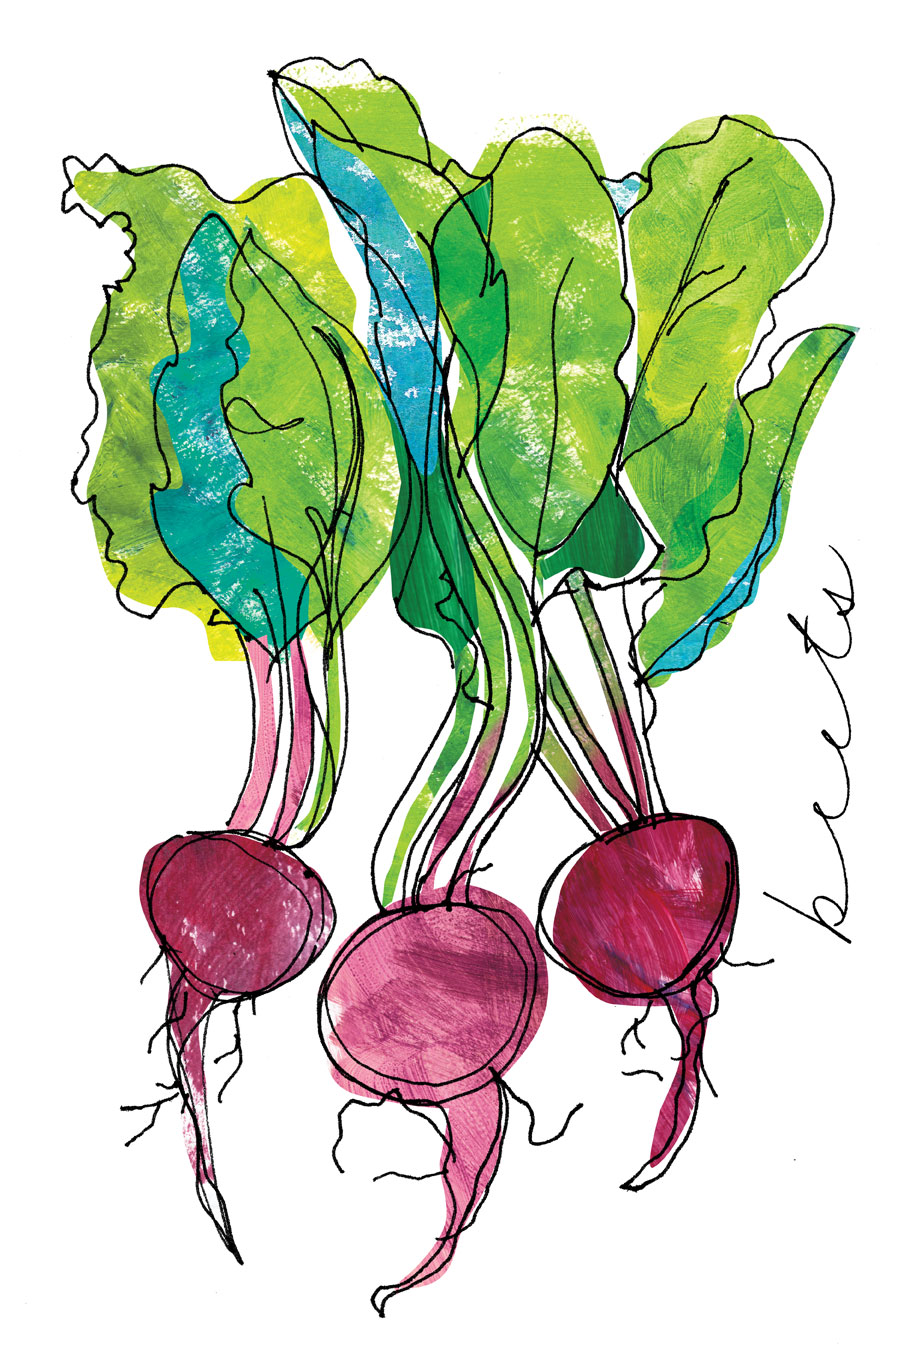 Beets spot illustration